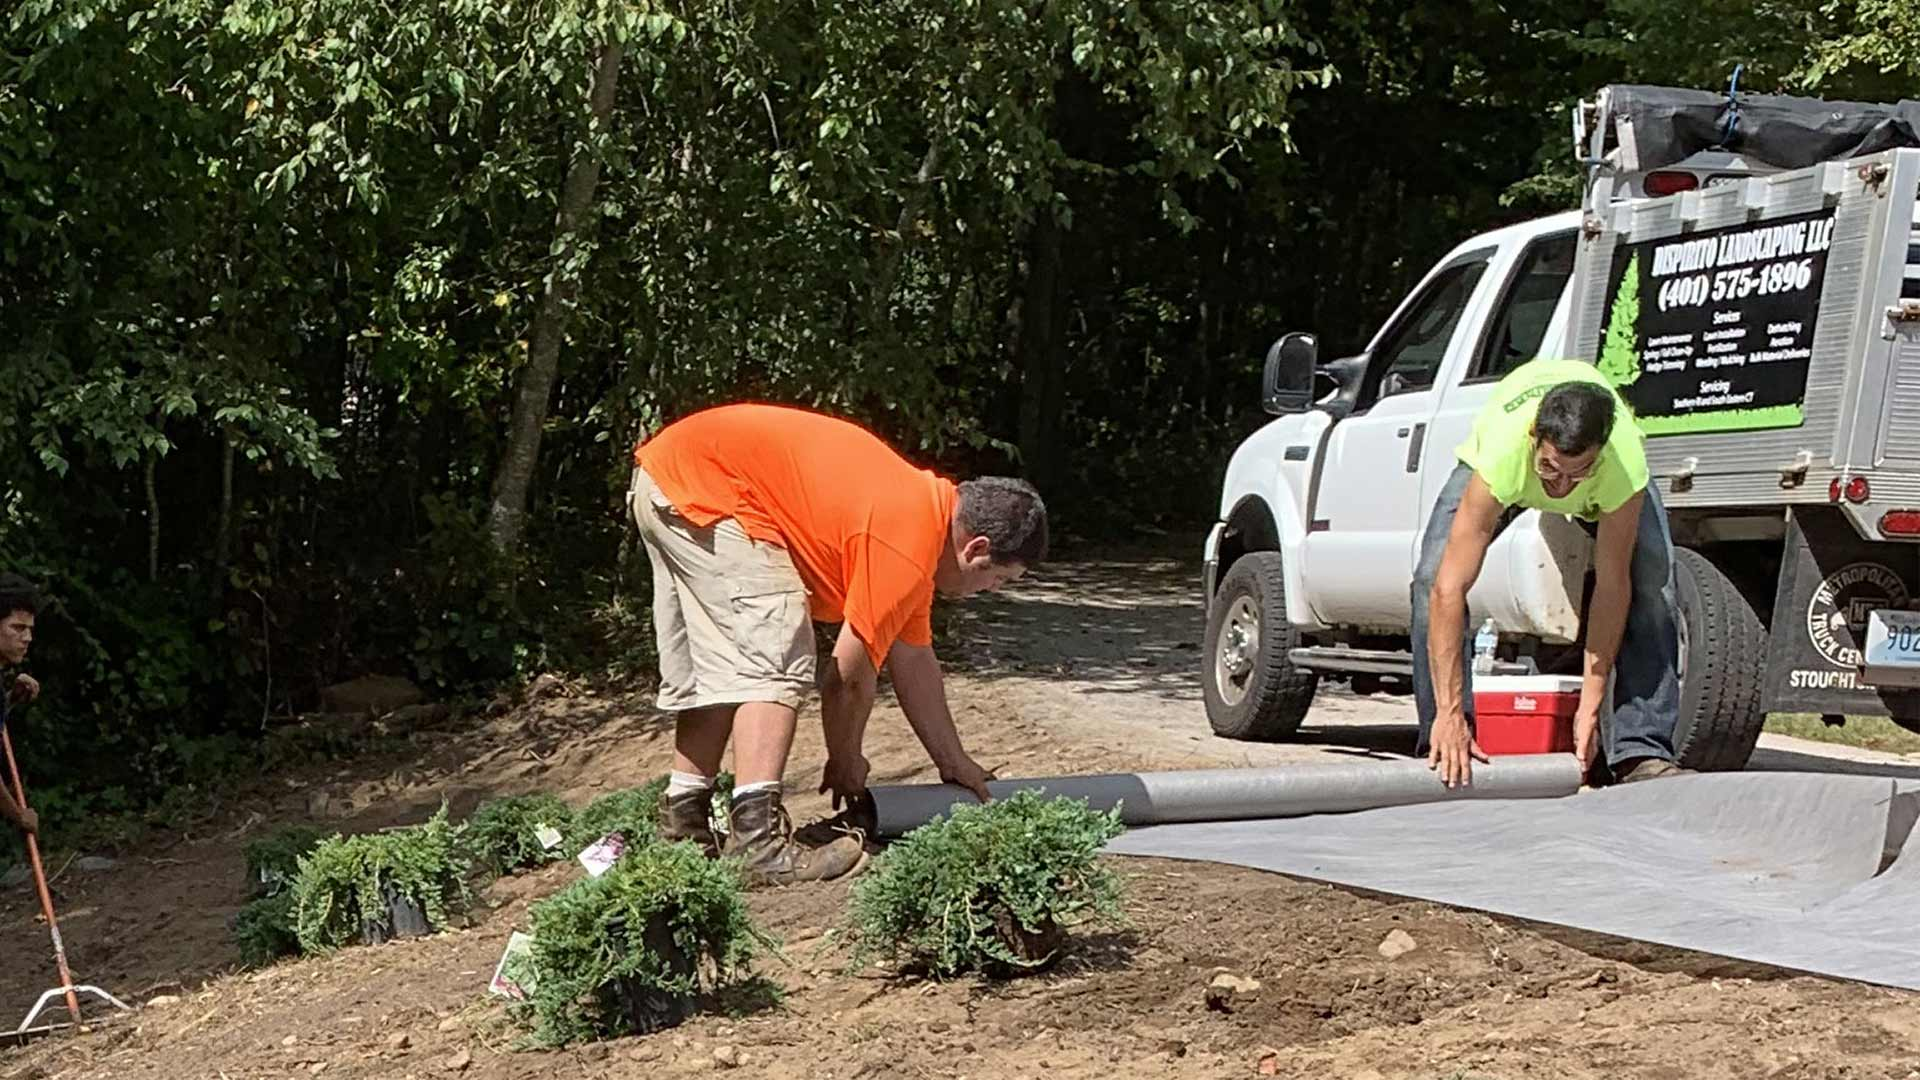 DiSpirito Landscaping LLC employees working on landscaping projects in Westerly, RI.